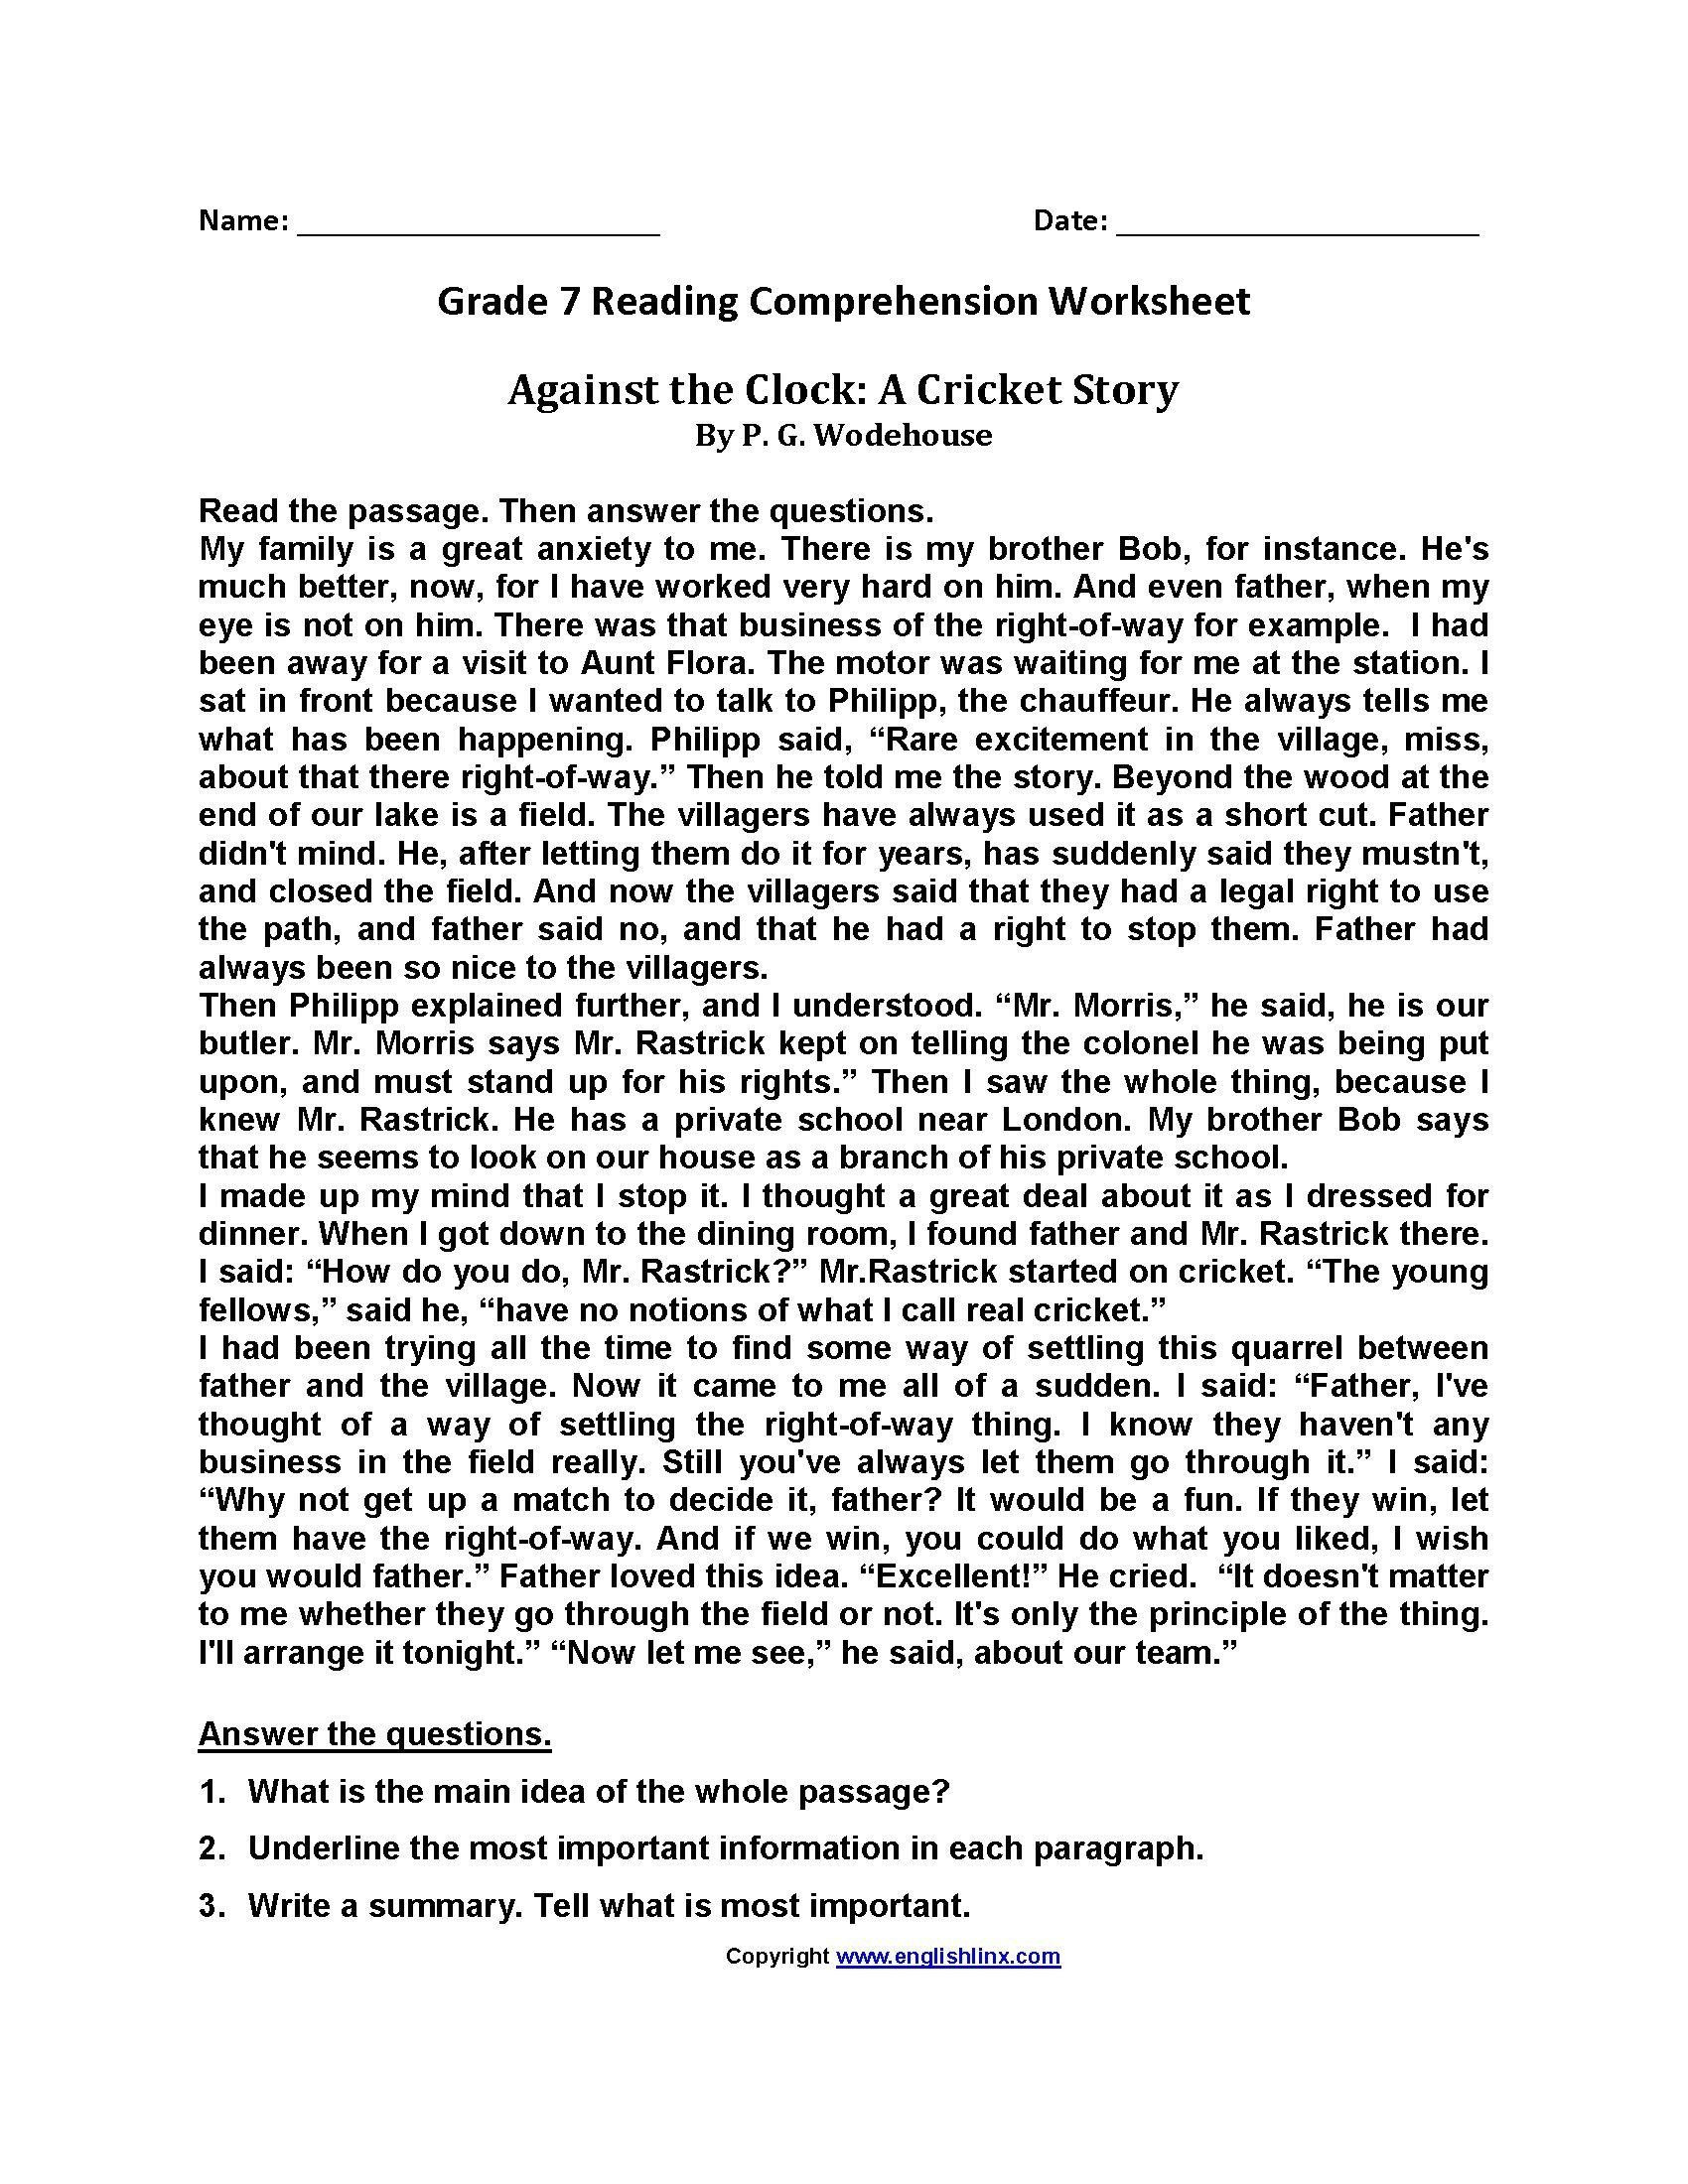 Summarizing Worksheet 3rd Grade Summarizing Worksheet 3rd Grade 7 General Summarizing